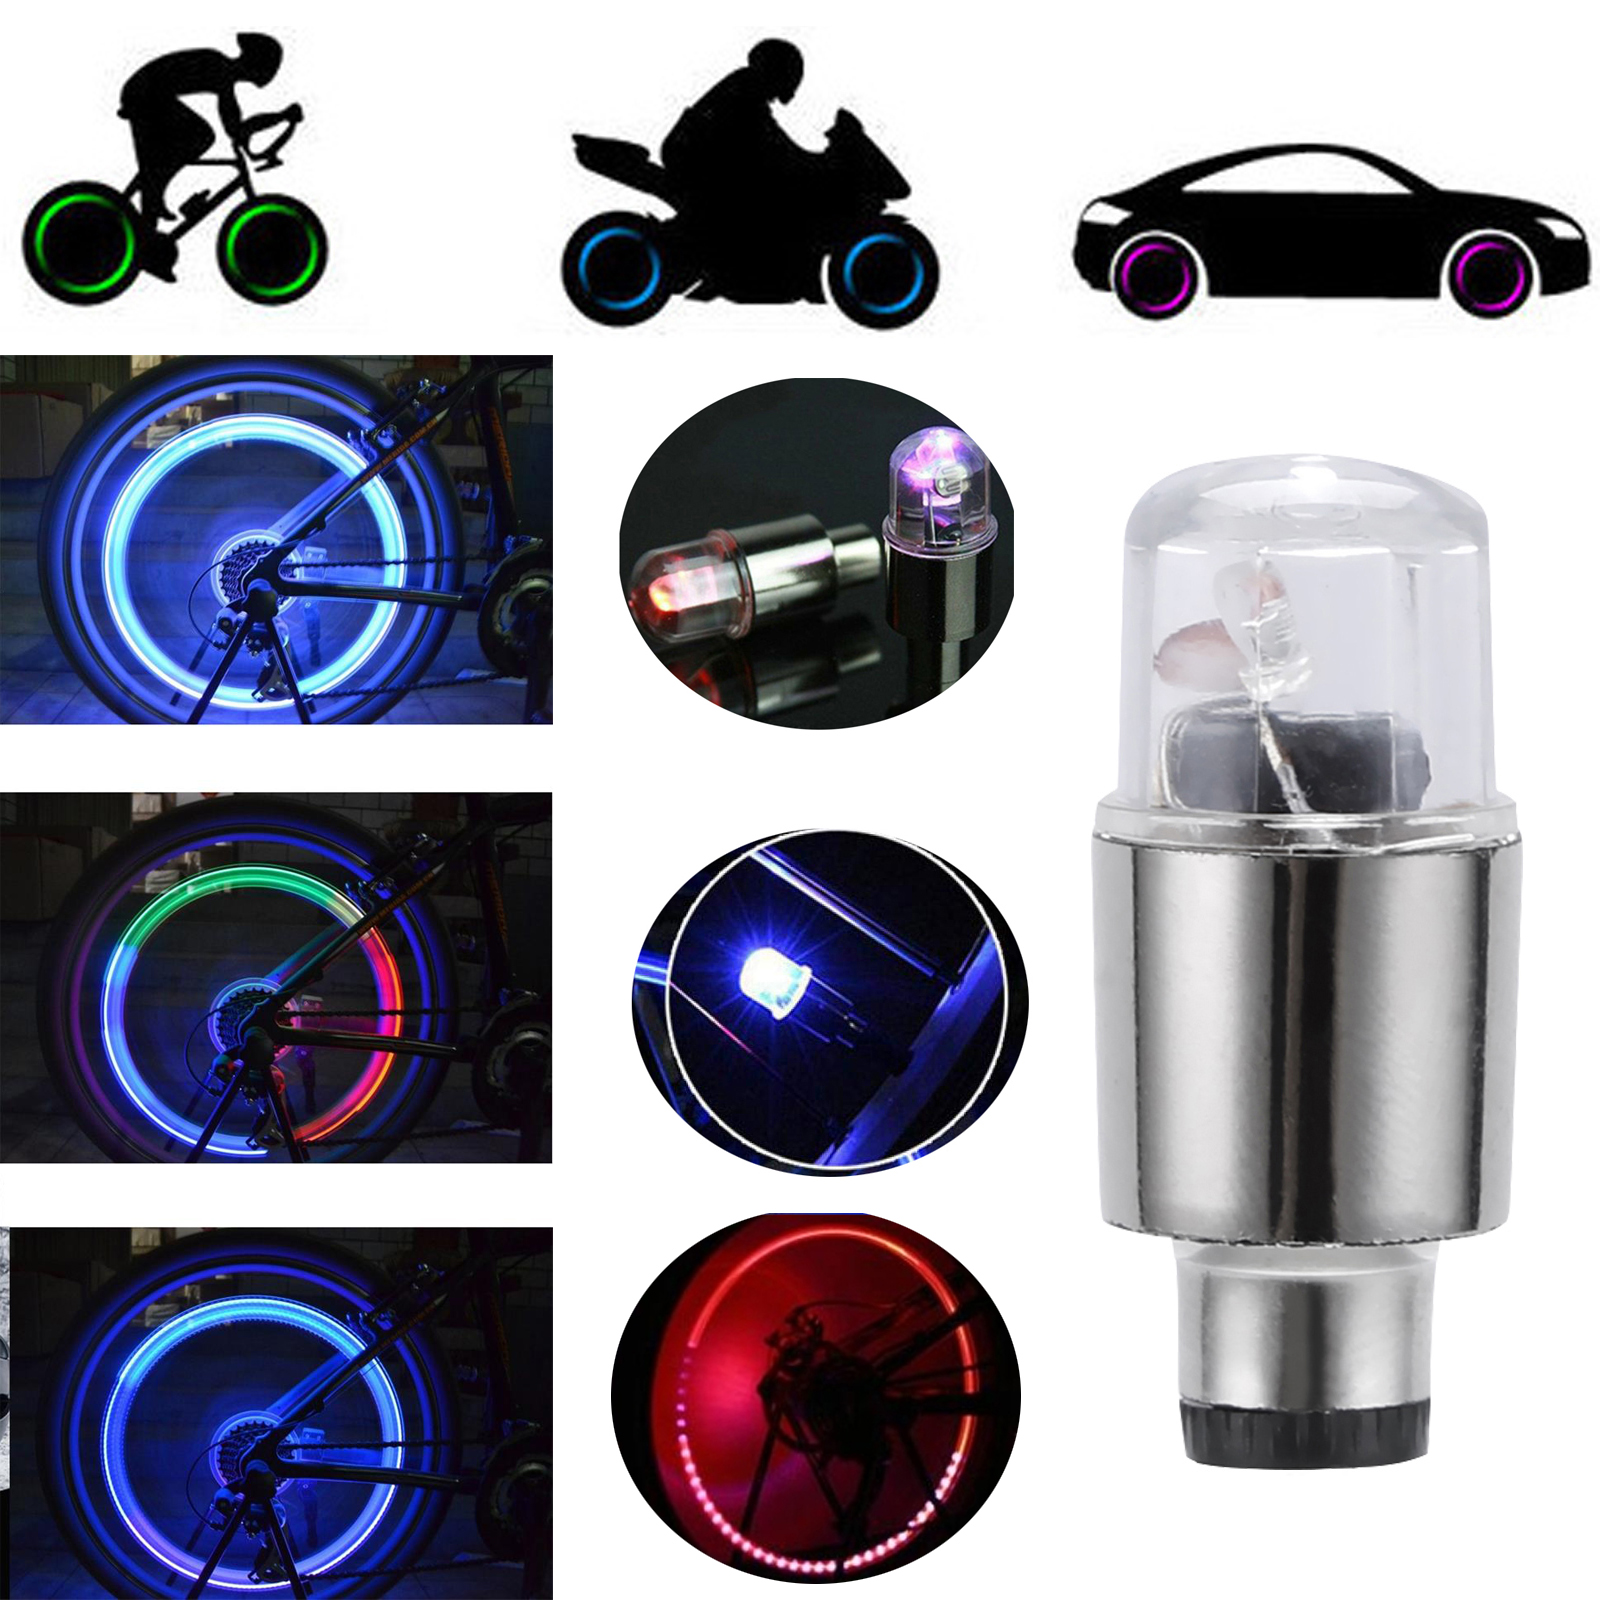 2Pcs RGB Flash LED Wheel Lights Valve Caps For Bike Car Motorcycle Battery Included